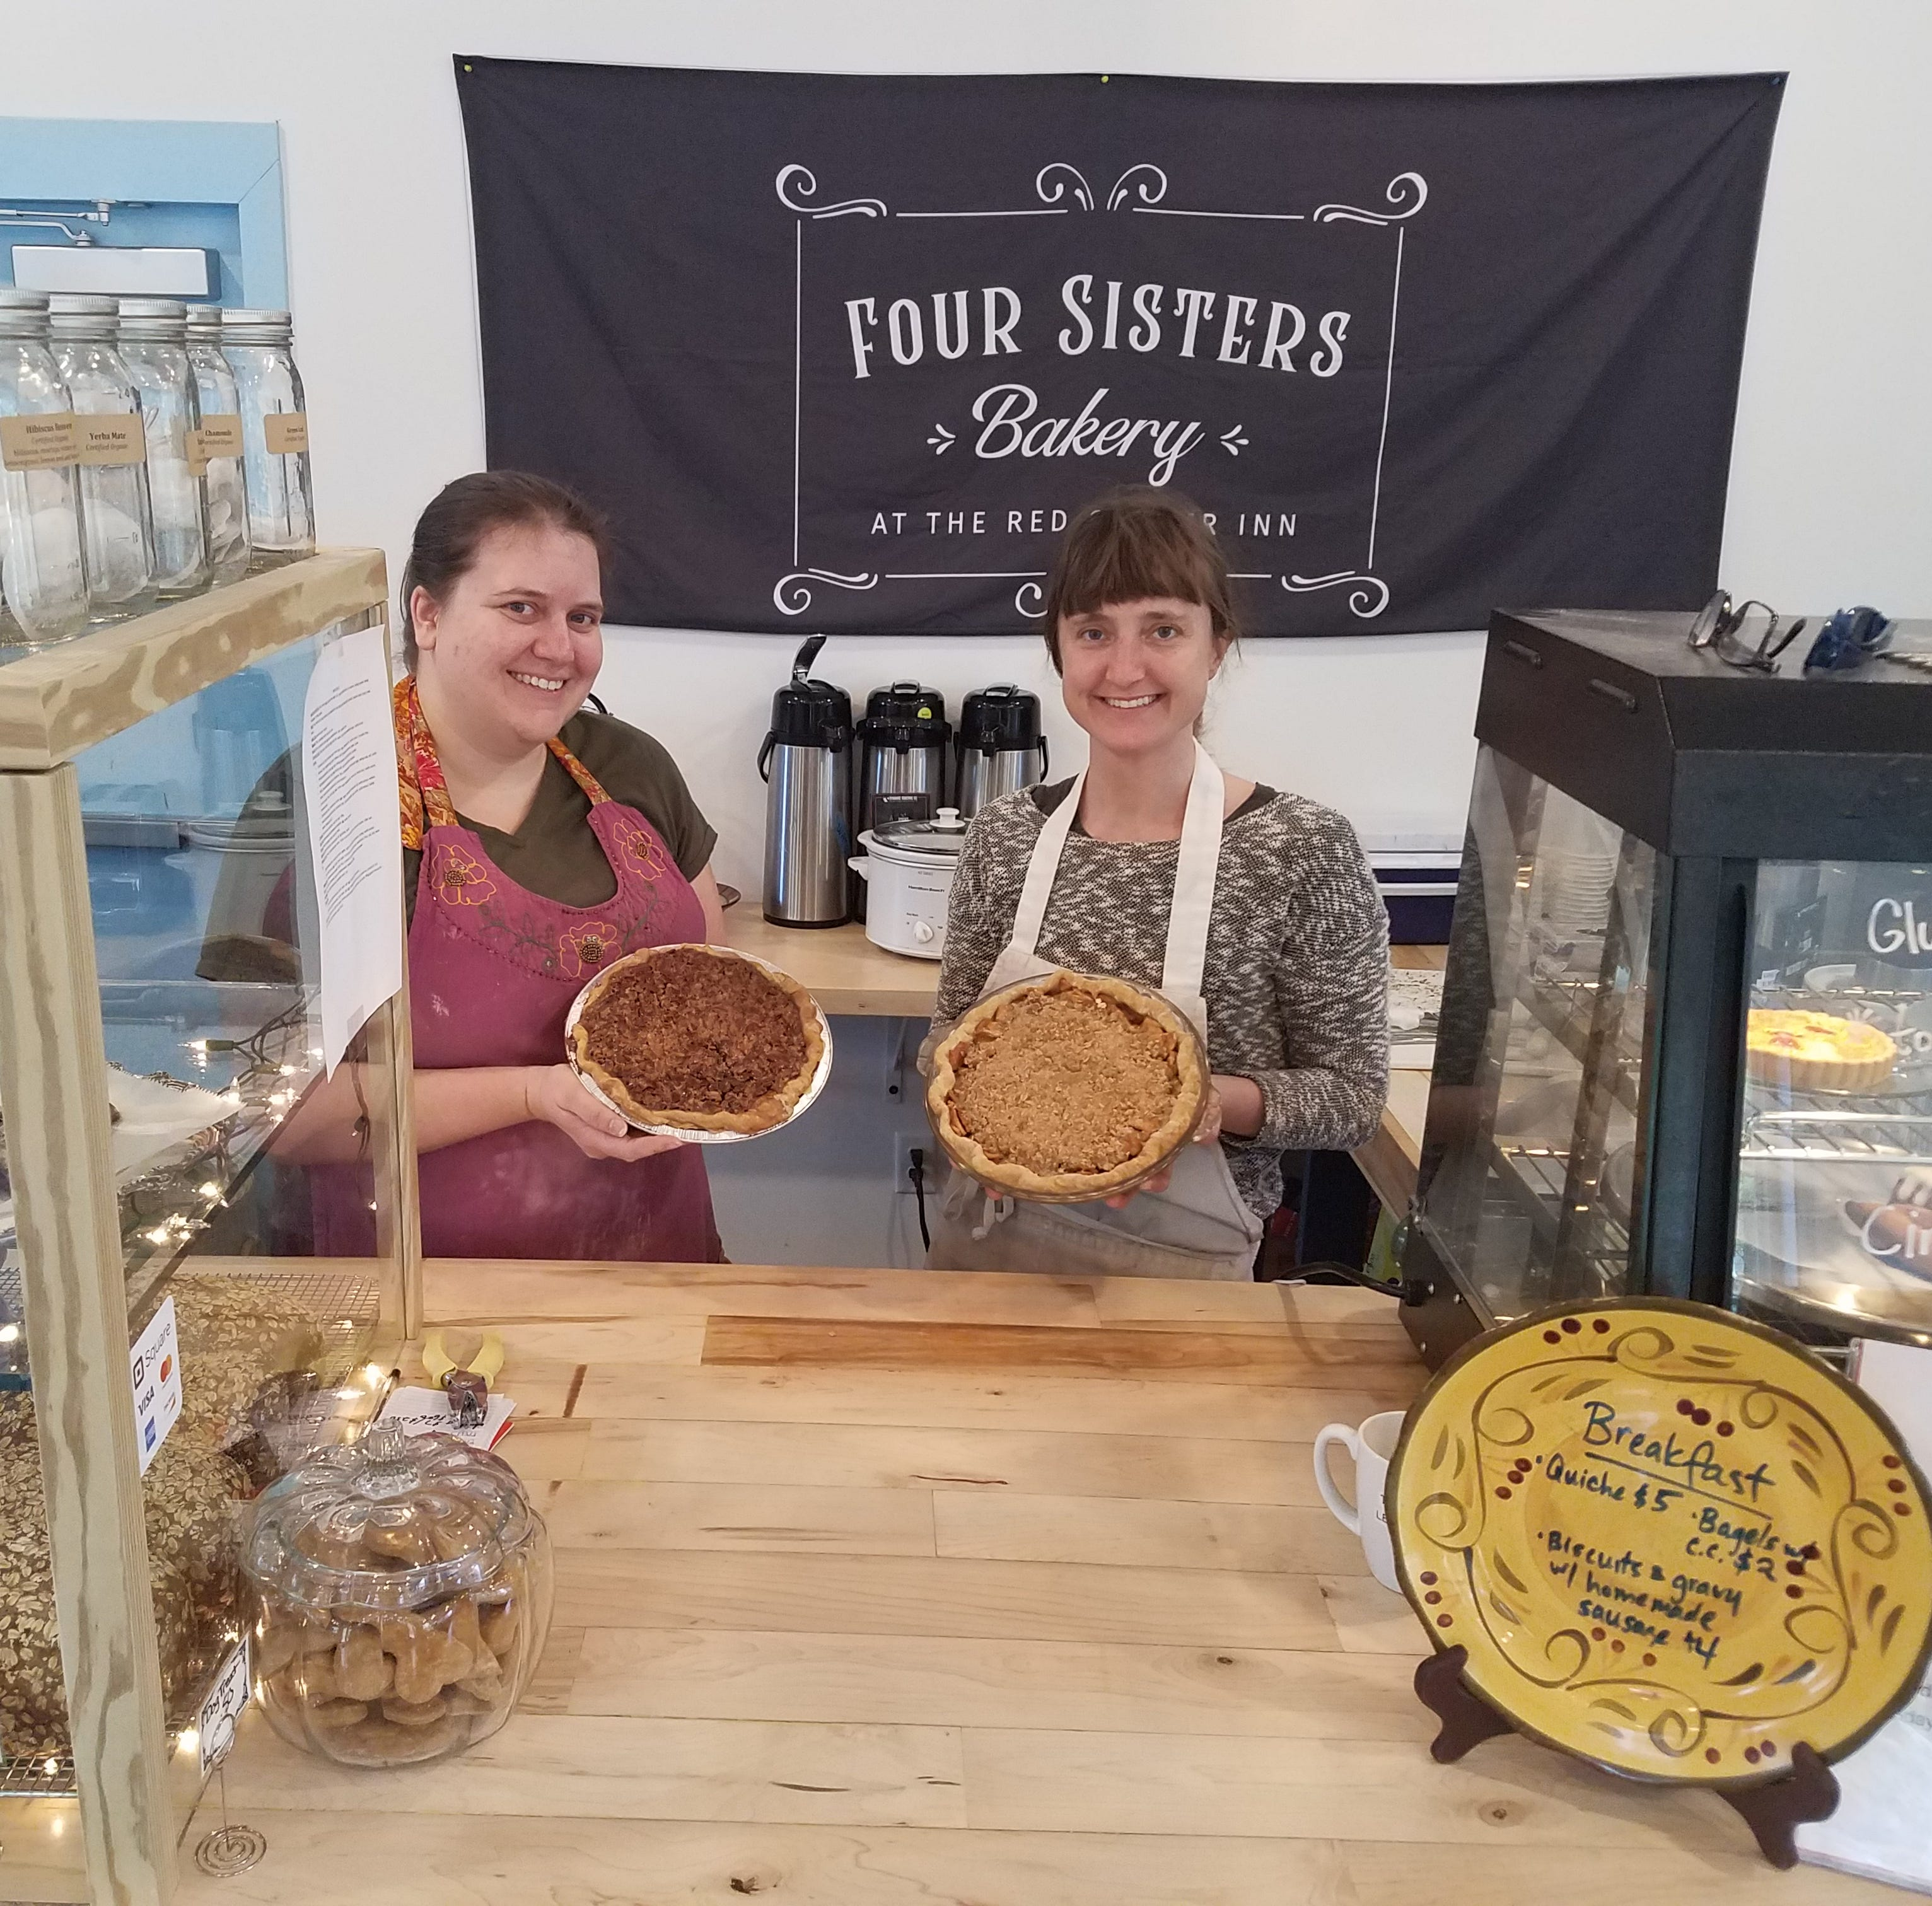 Four Sisters Bakery hosts Pi(e) Day celebration